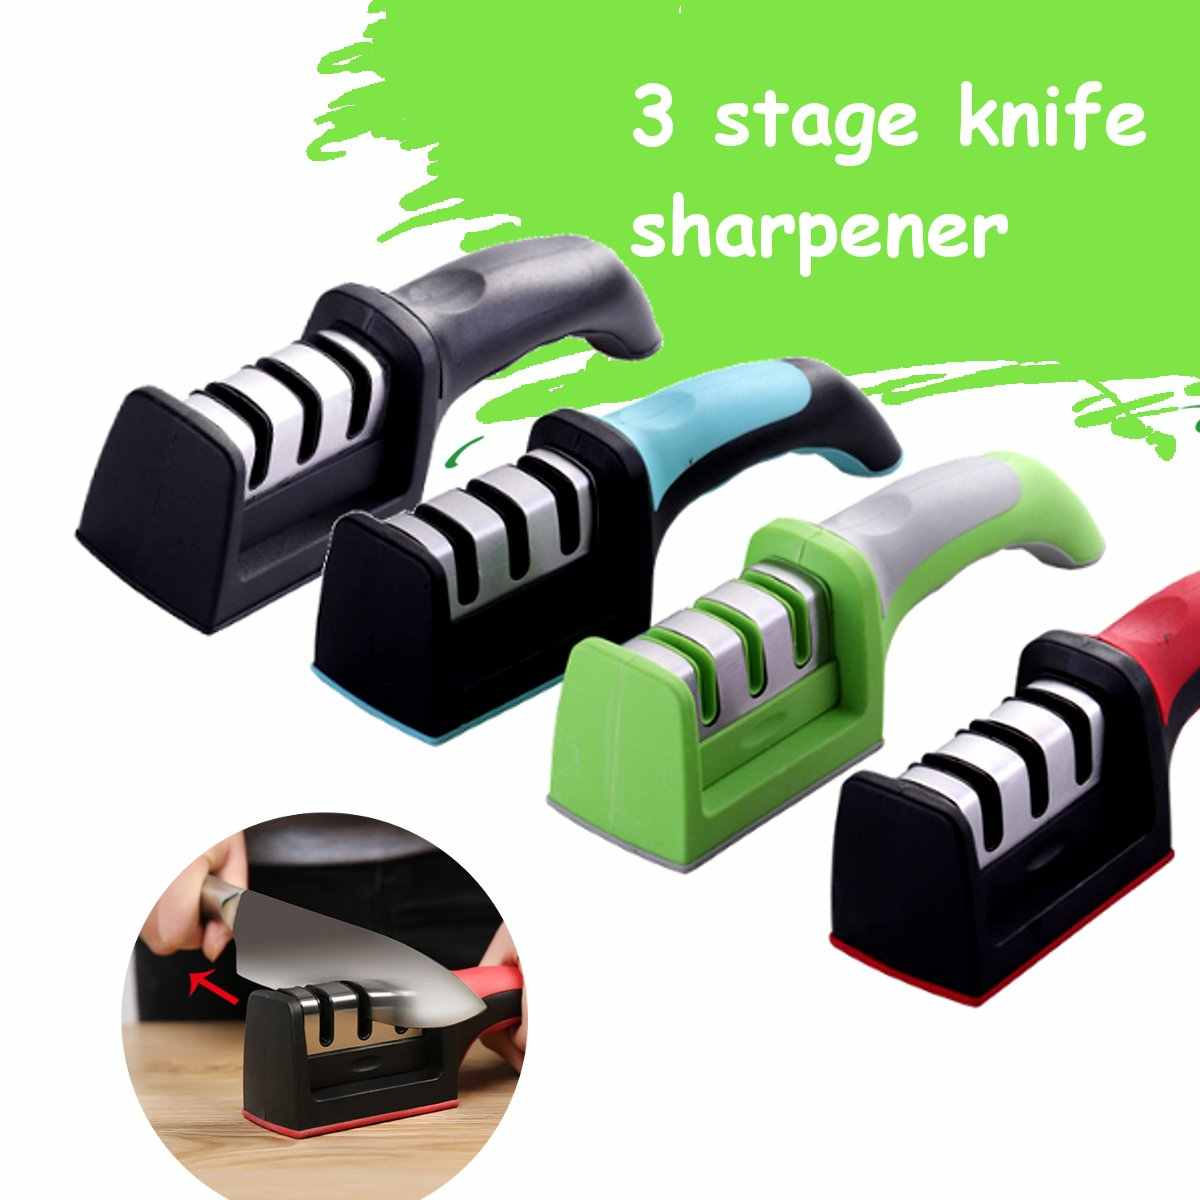 Manual Knife Sharpener 3 Stage Steel alloy tungsten steel Ceramic Knife Sharpener Kitchen Sharpening Tools